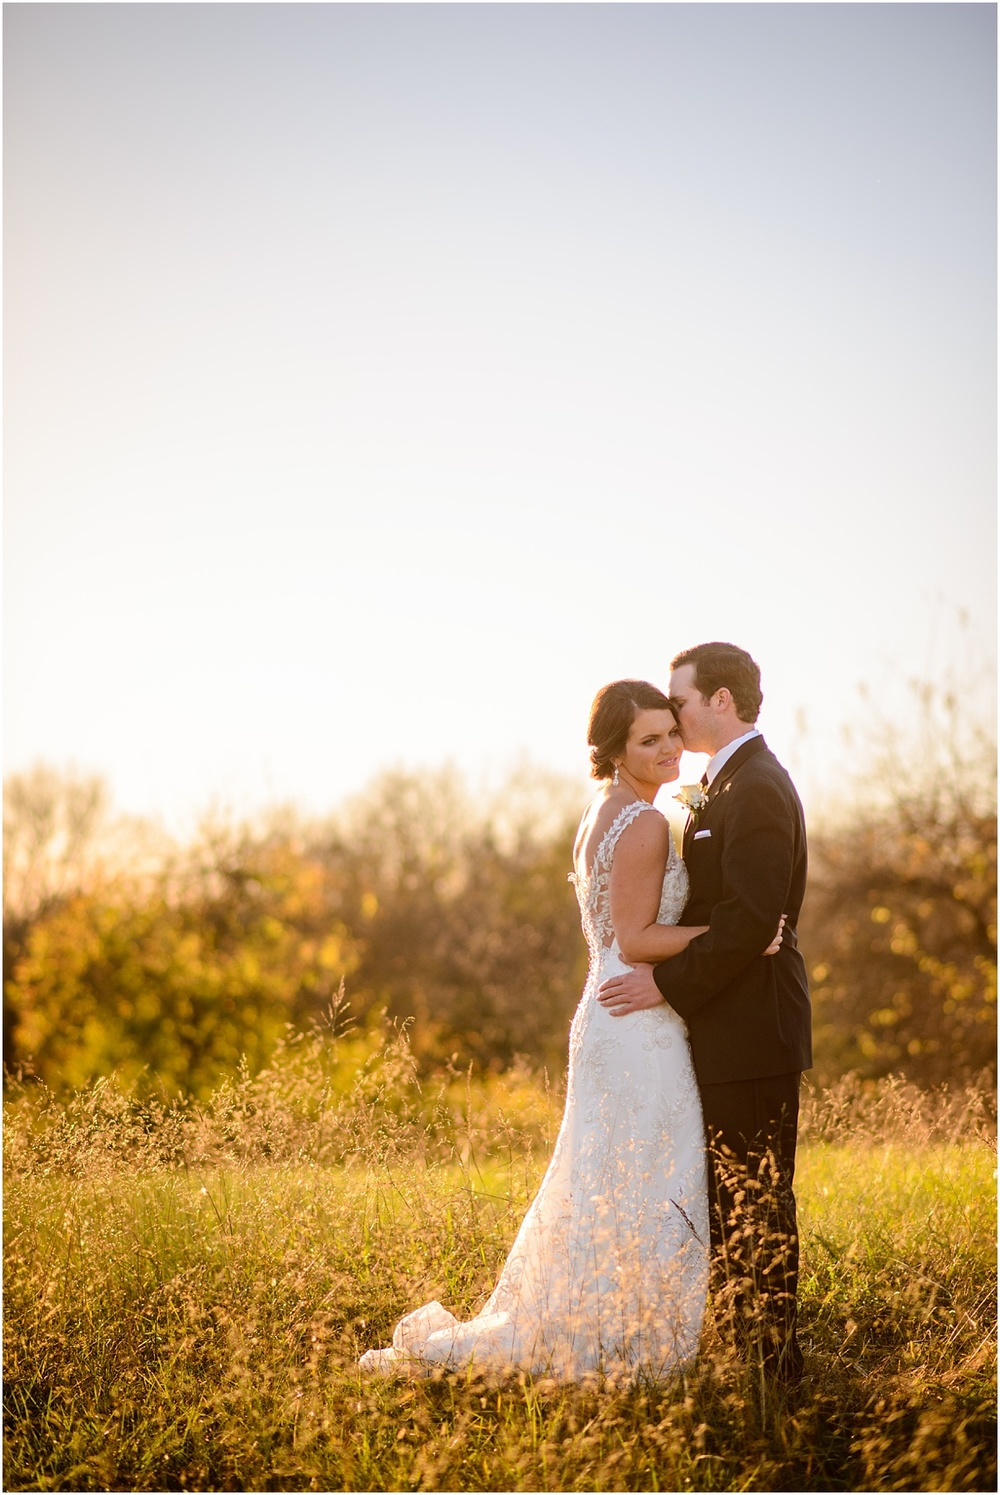 Greg Smit Photography Nashville wedding photographer Tomlinson Family Farm_0046